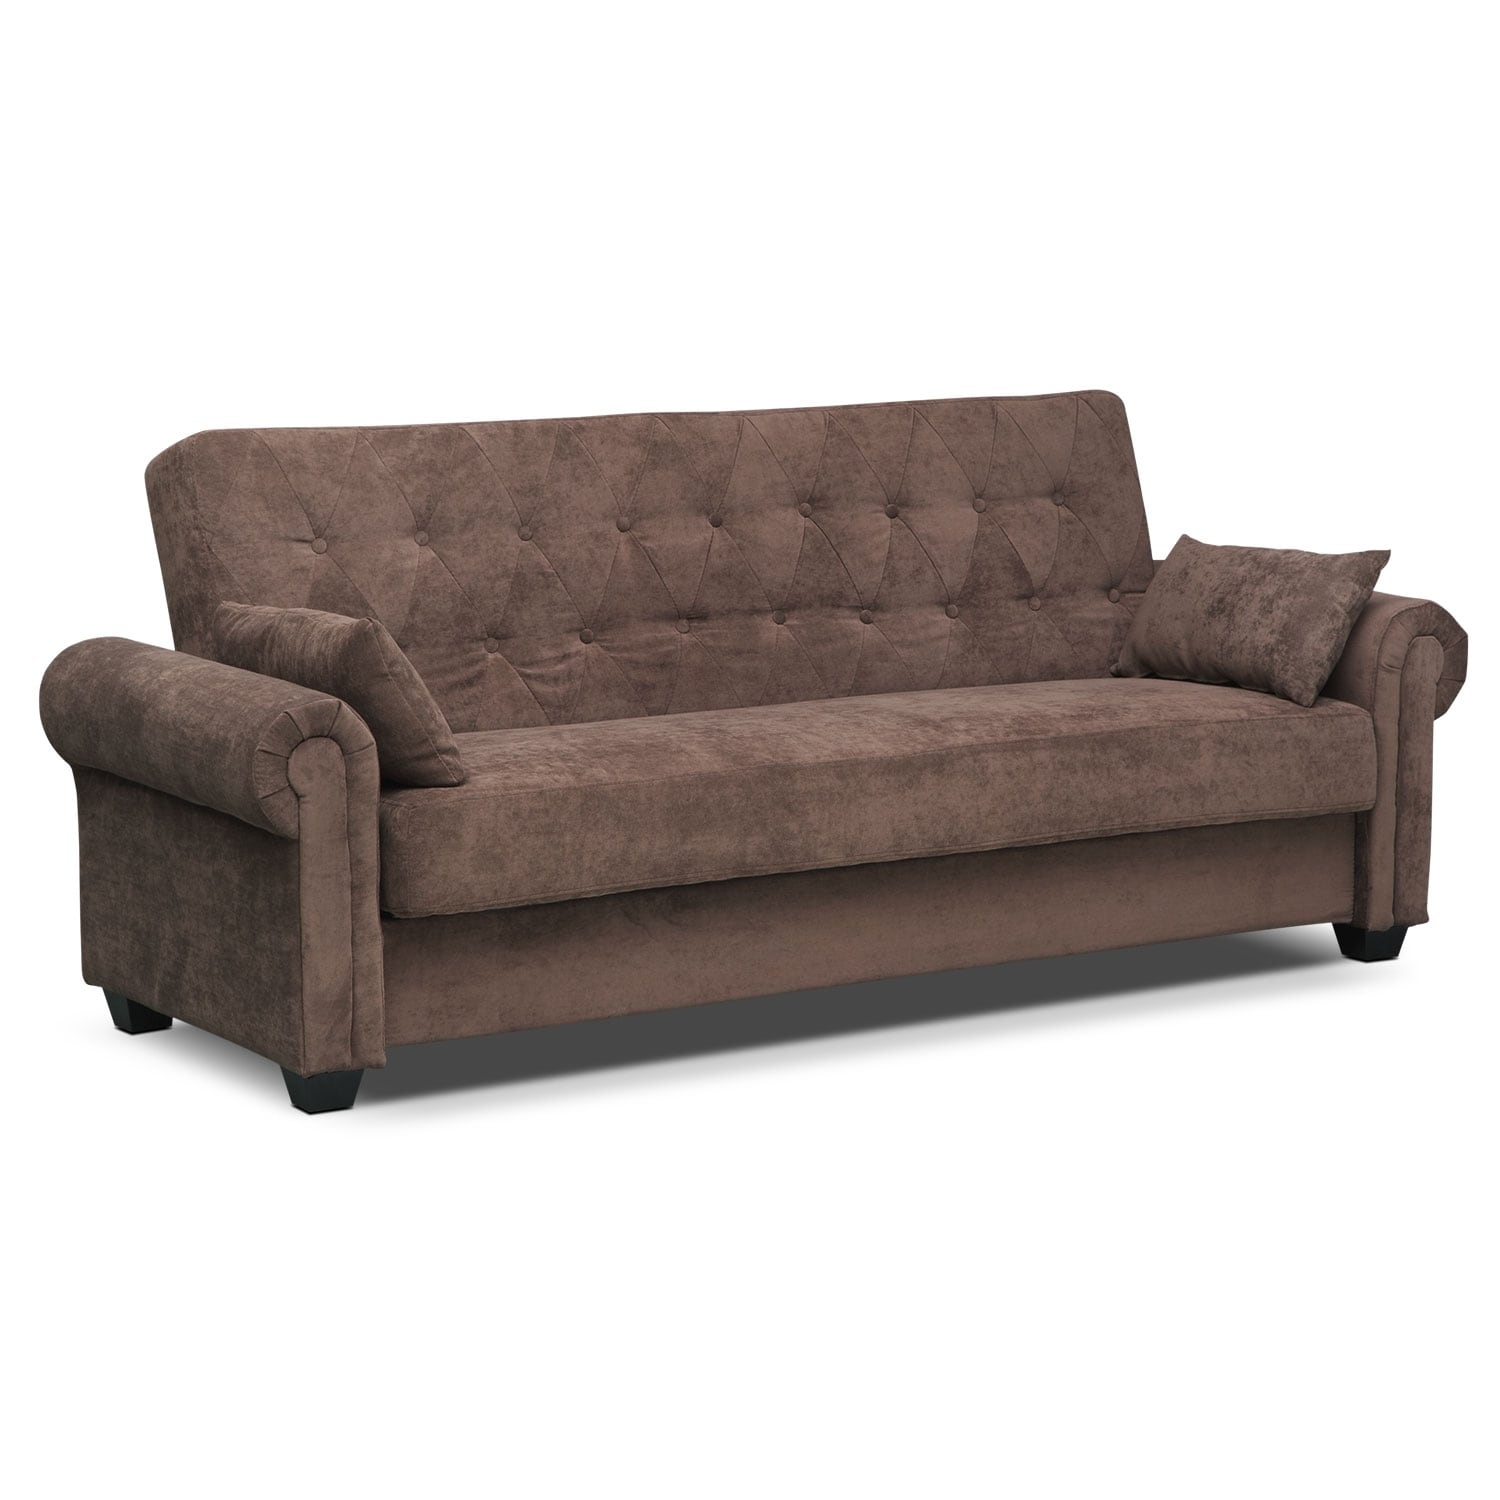 Andrea Upholstery Futon Sofa Bed With Storage Value City Furniture